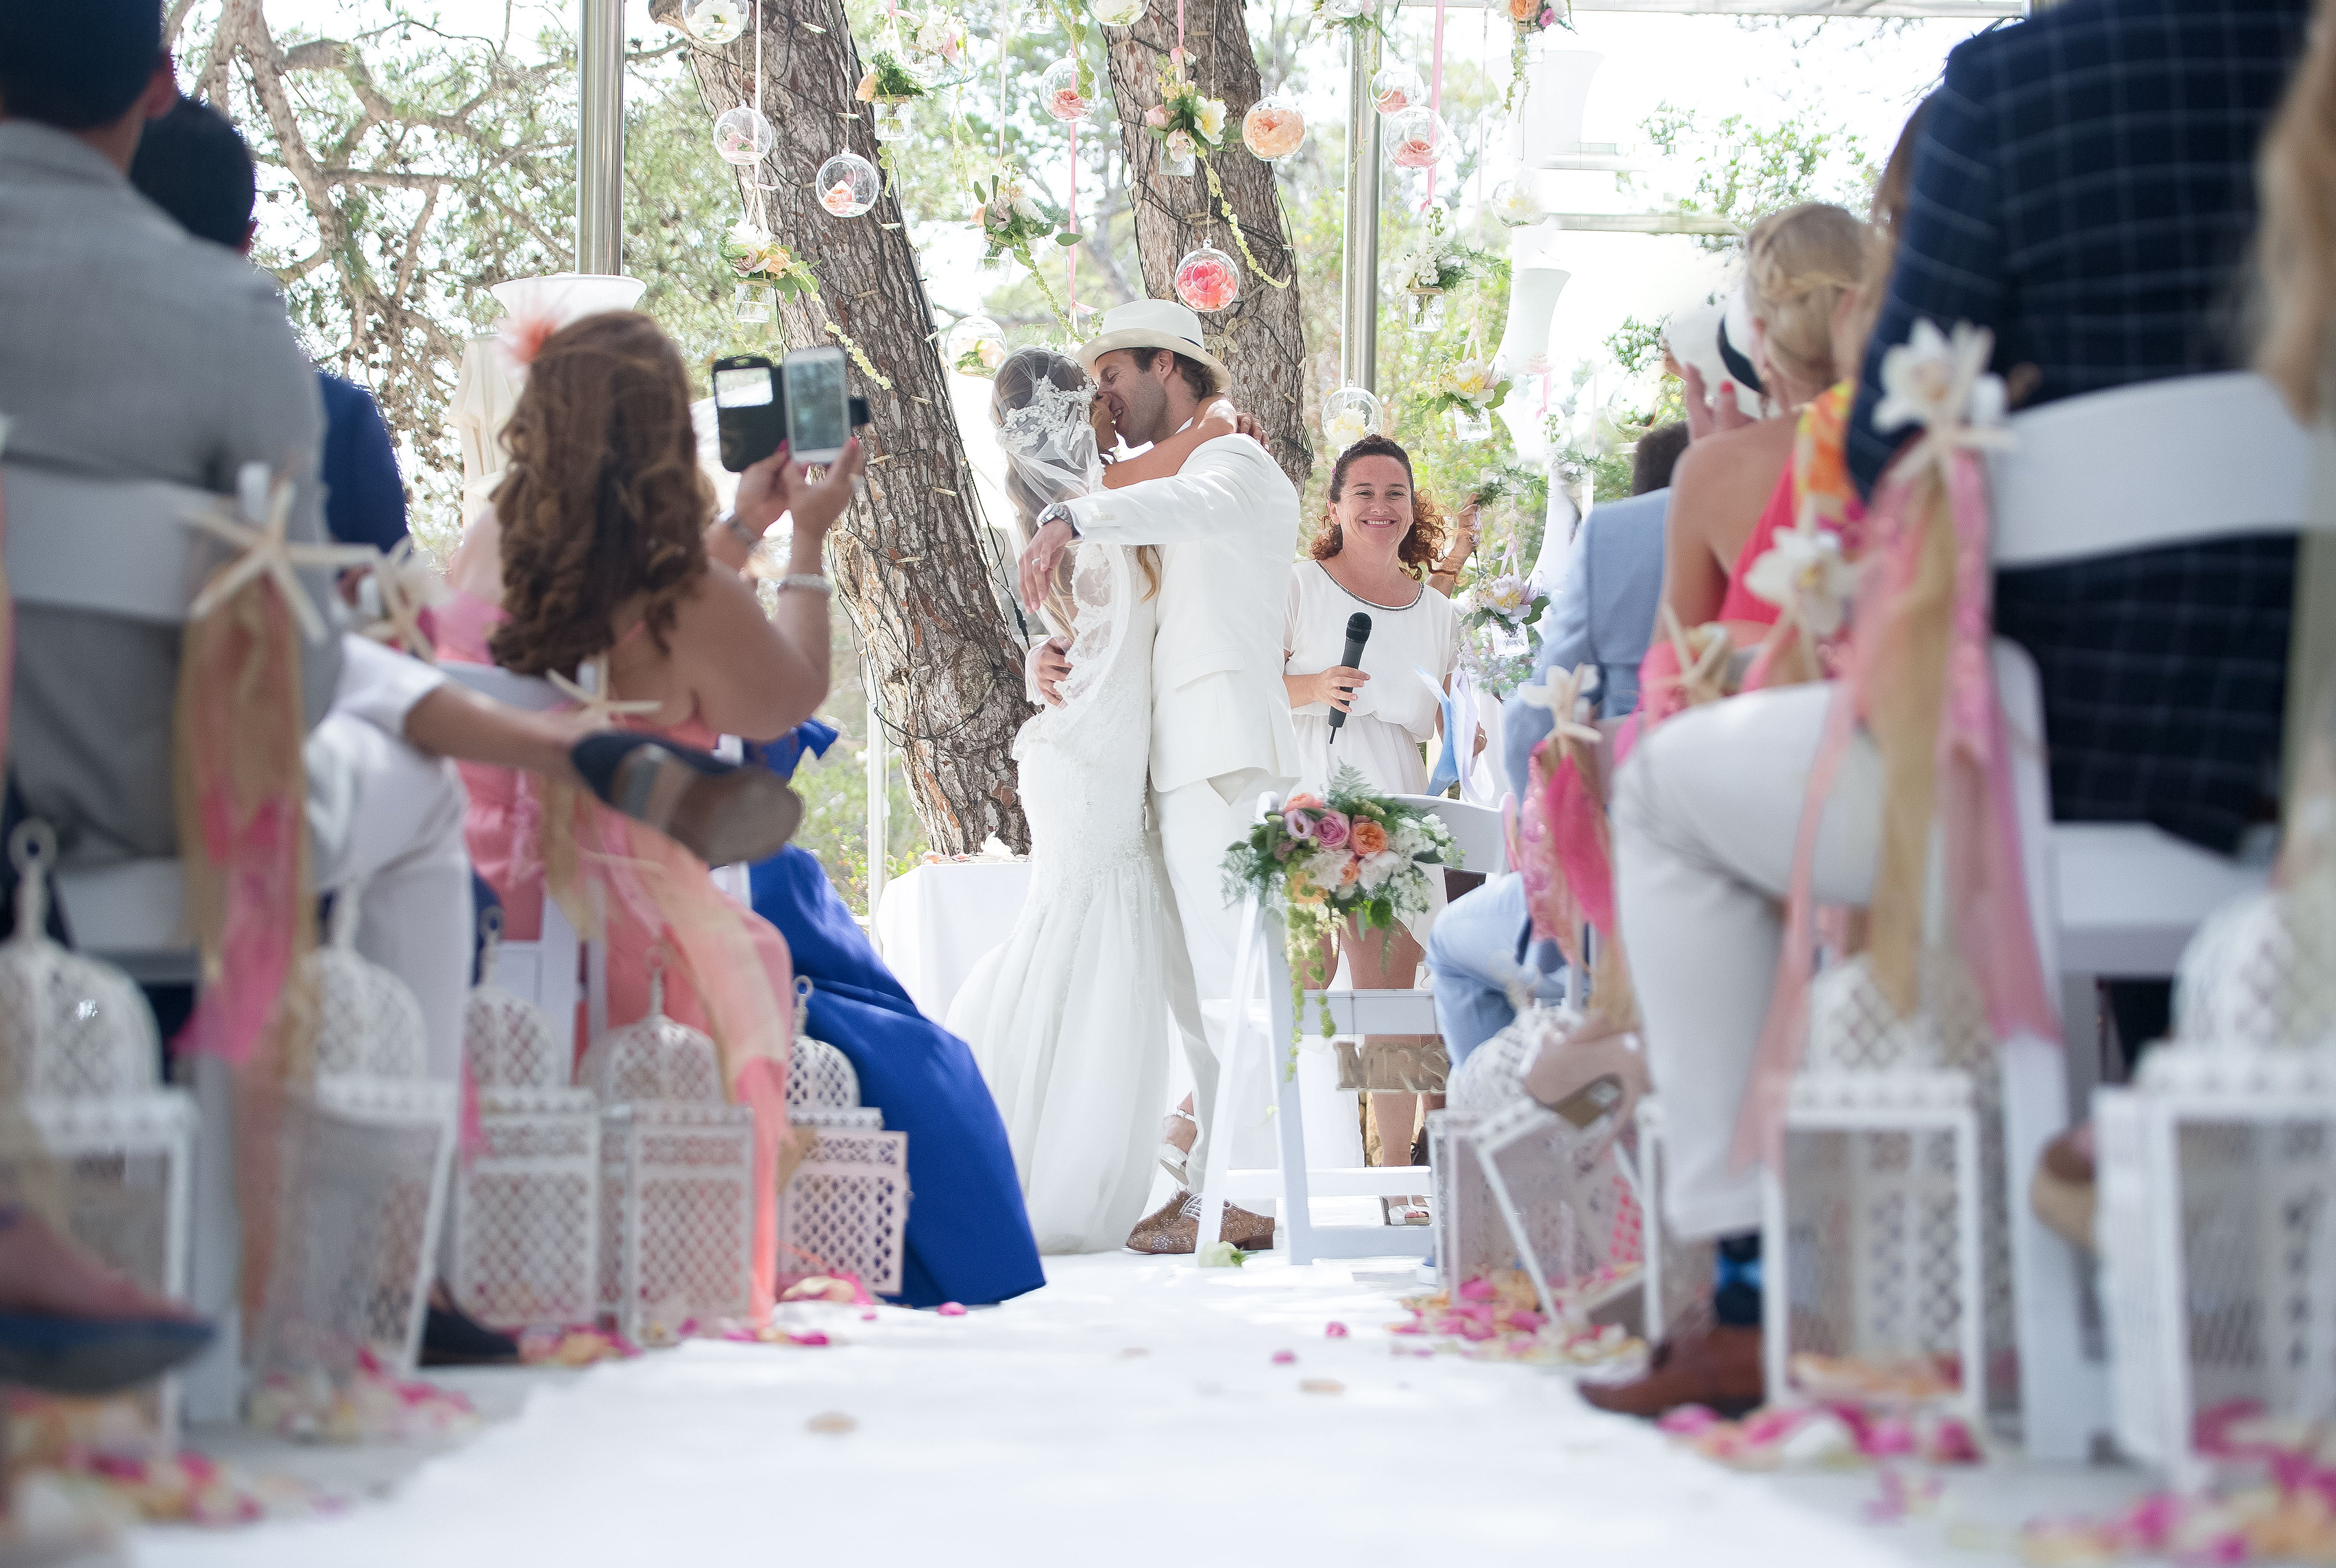 Ibizan Wedding Style - by Selia Zingale Destination Wedding Photographer